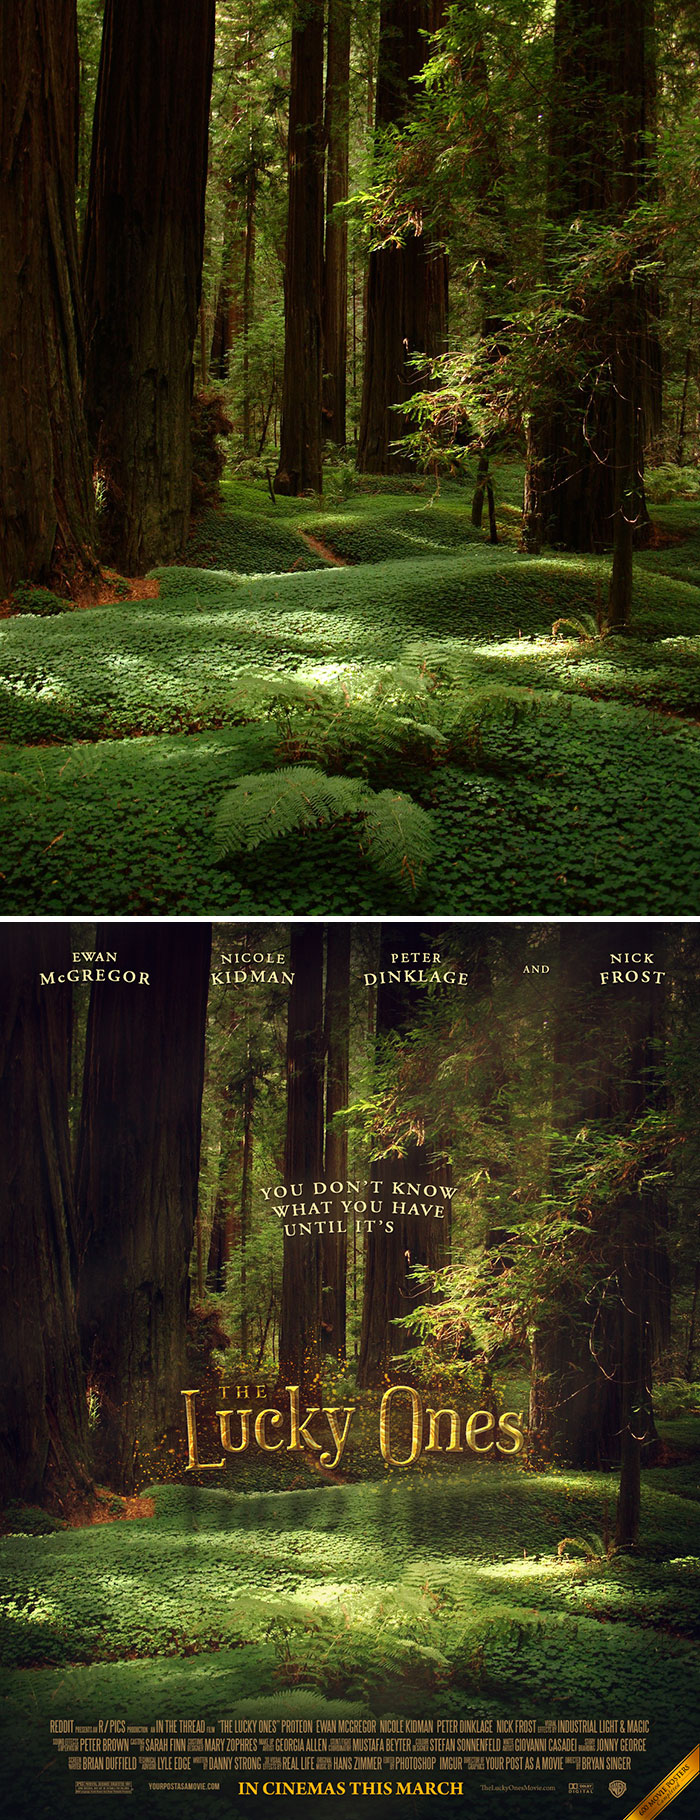 random-people-images-turned-into-movie-posters-your-post-as-a-movie-20-57bd816bd9561__700